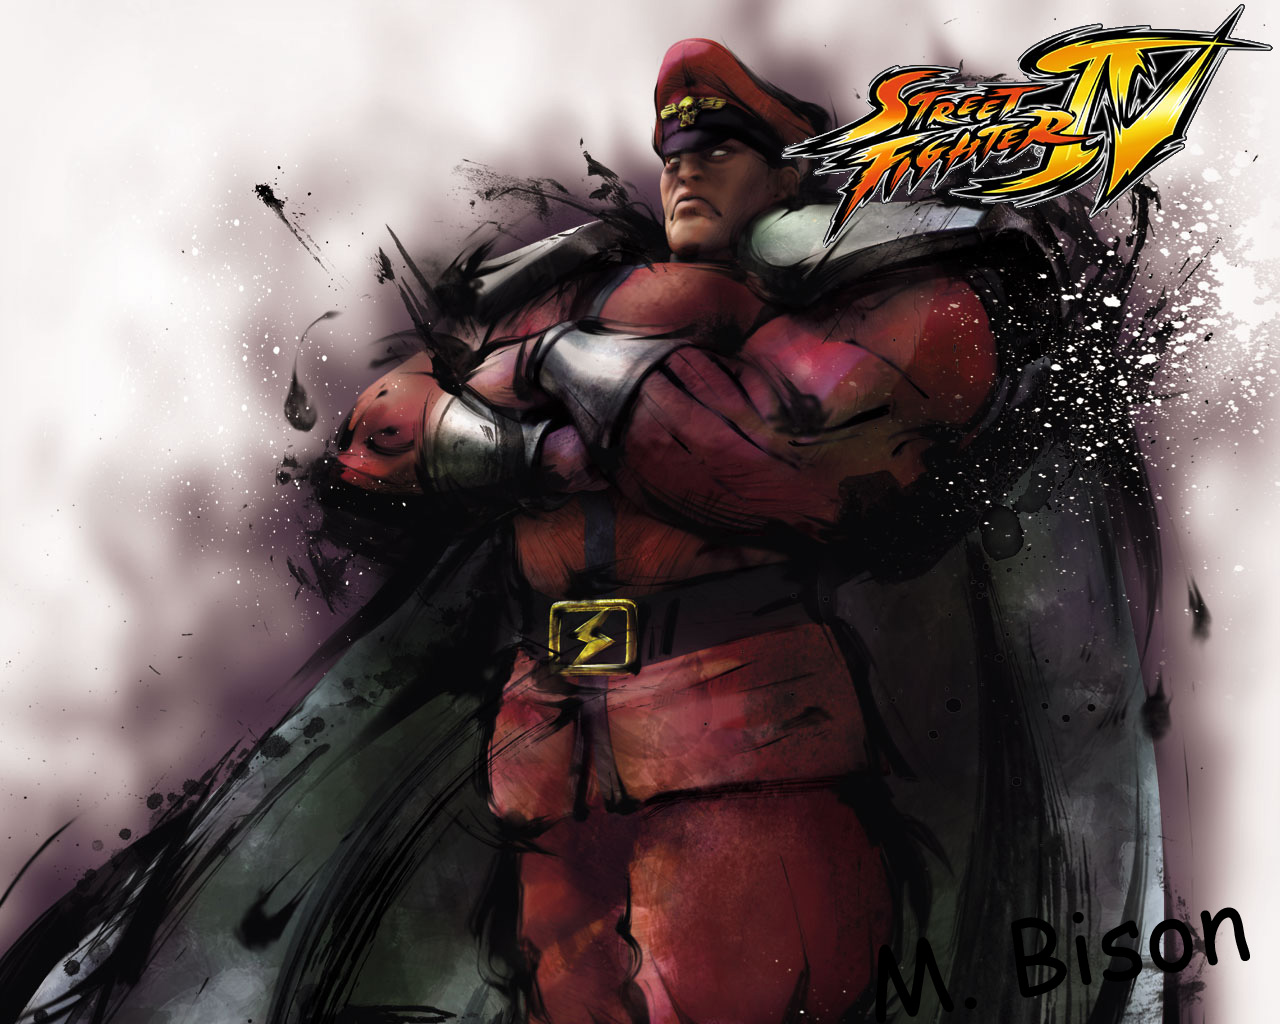 M. Bison by skolberg on DeviantArt